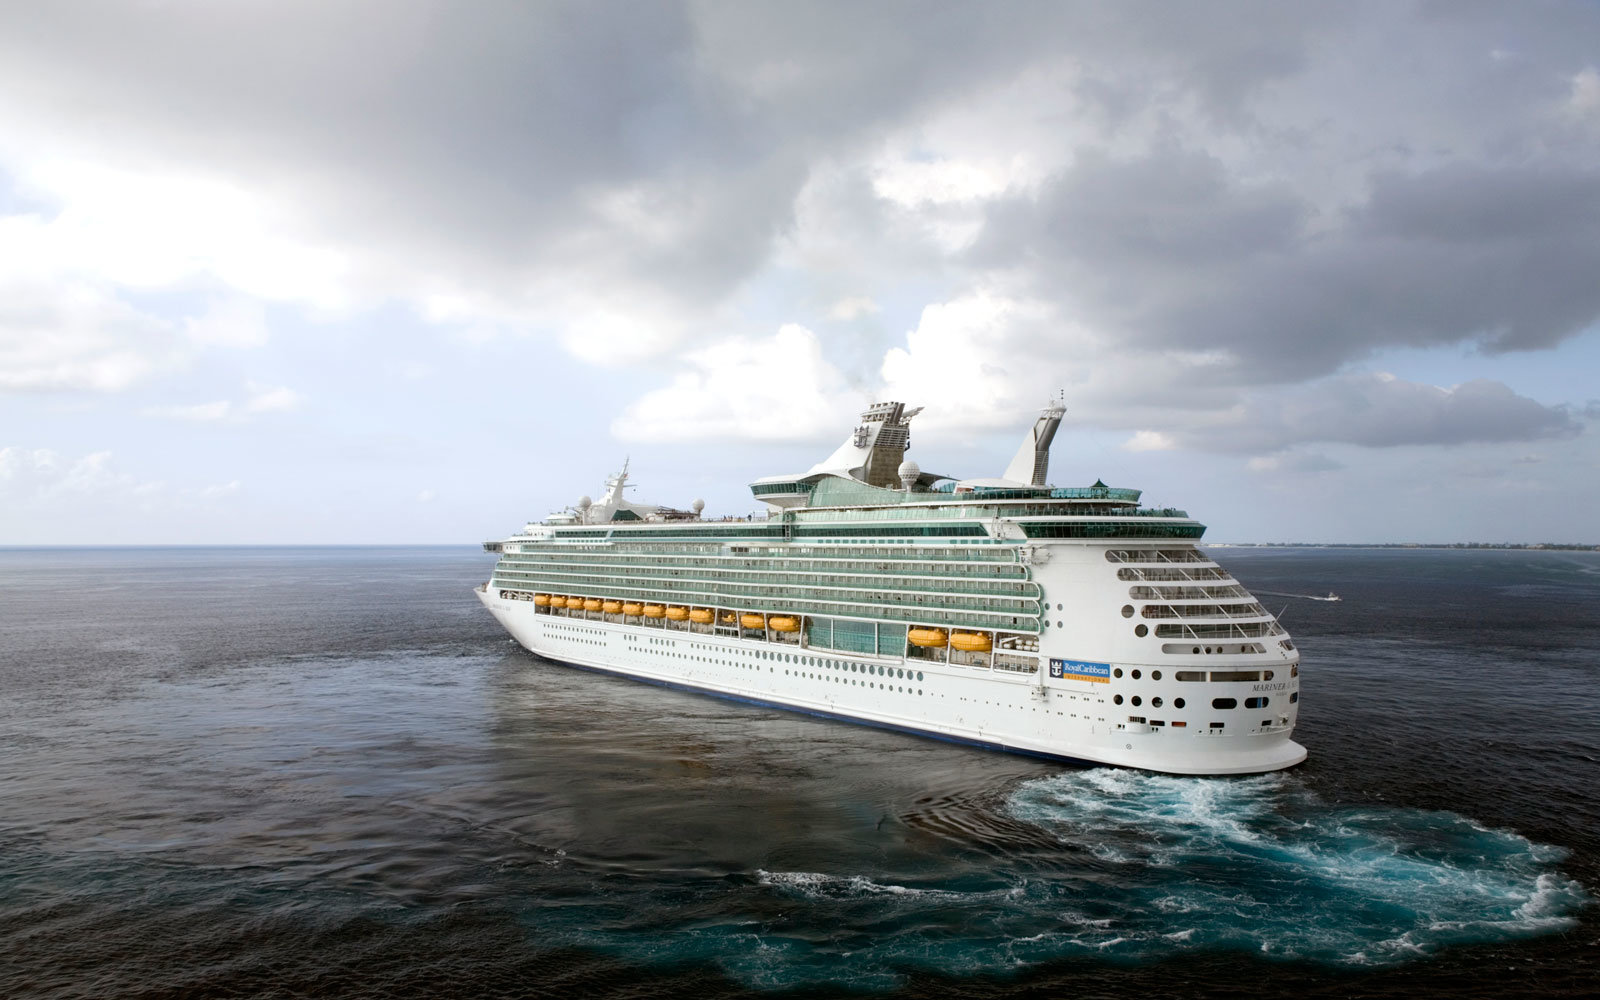 Cruise Ships Are Returning To The Caribbean Islands Struck By Hurricane Maria And Hurricane Irma